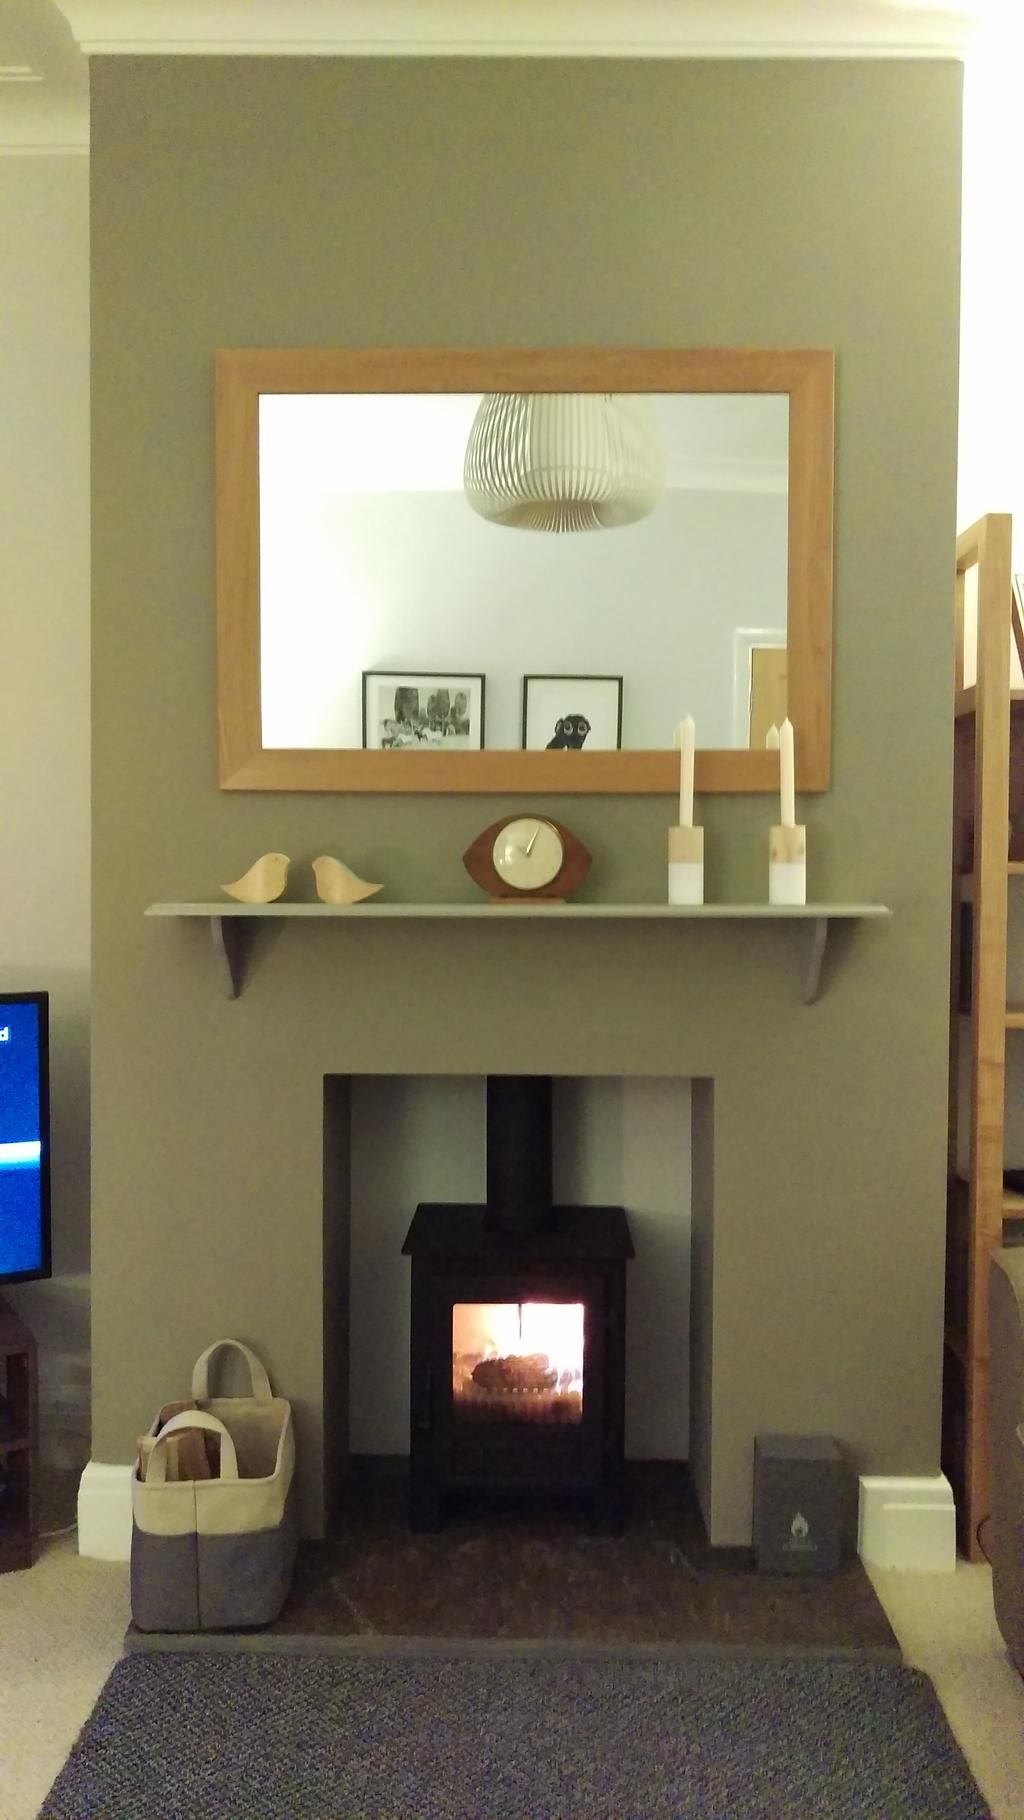 Yorkshire Stoves On Fireplace Stove Hygge Dining Room